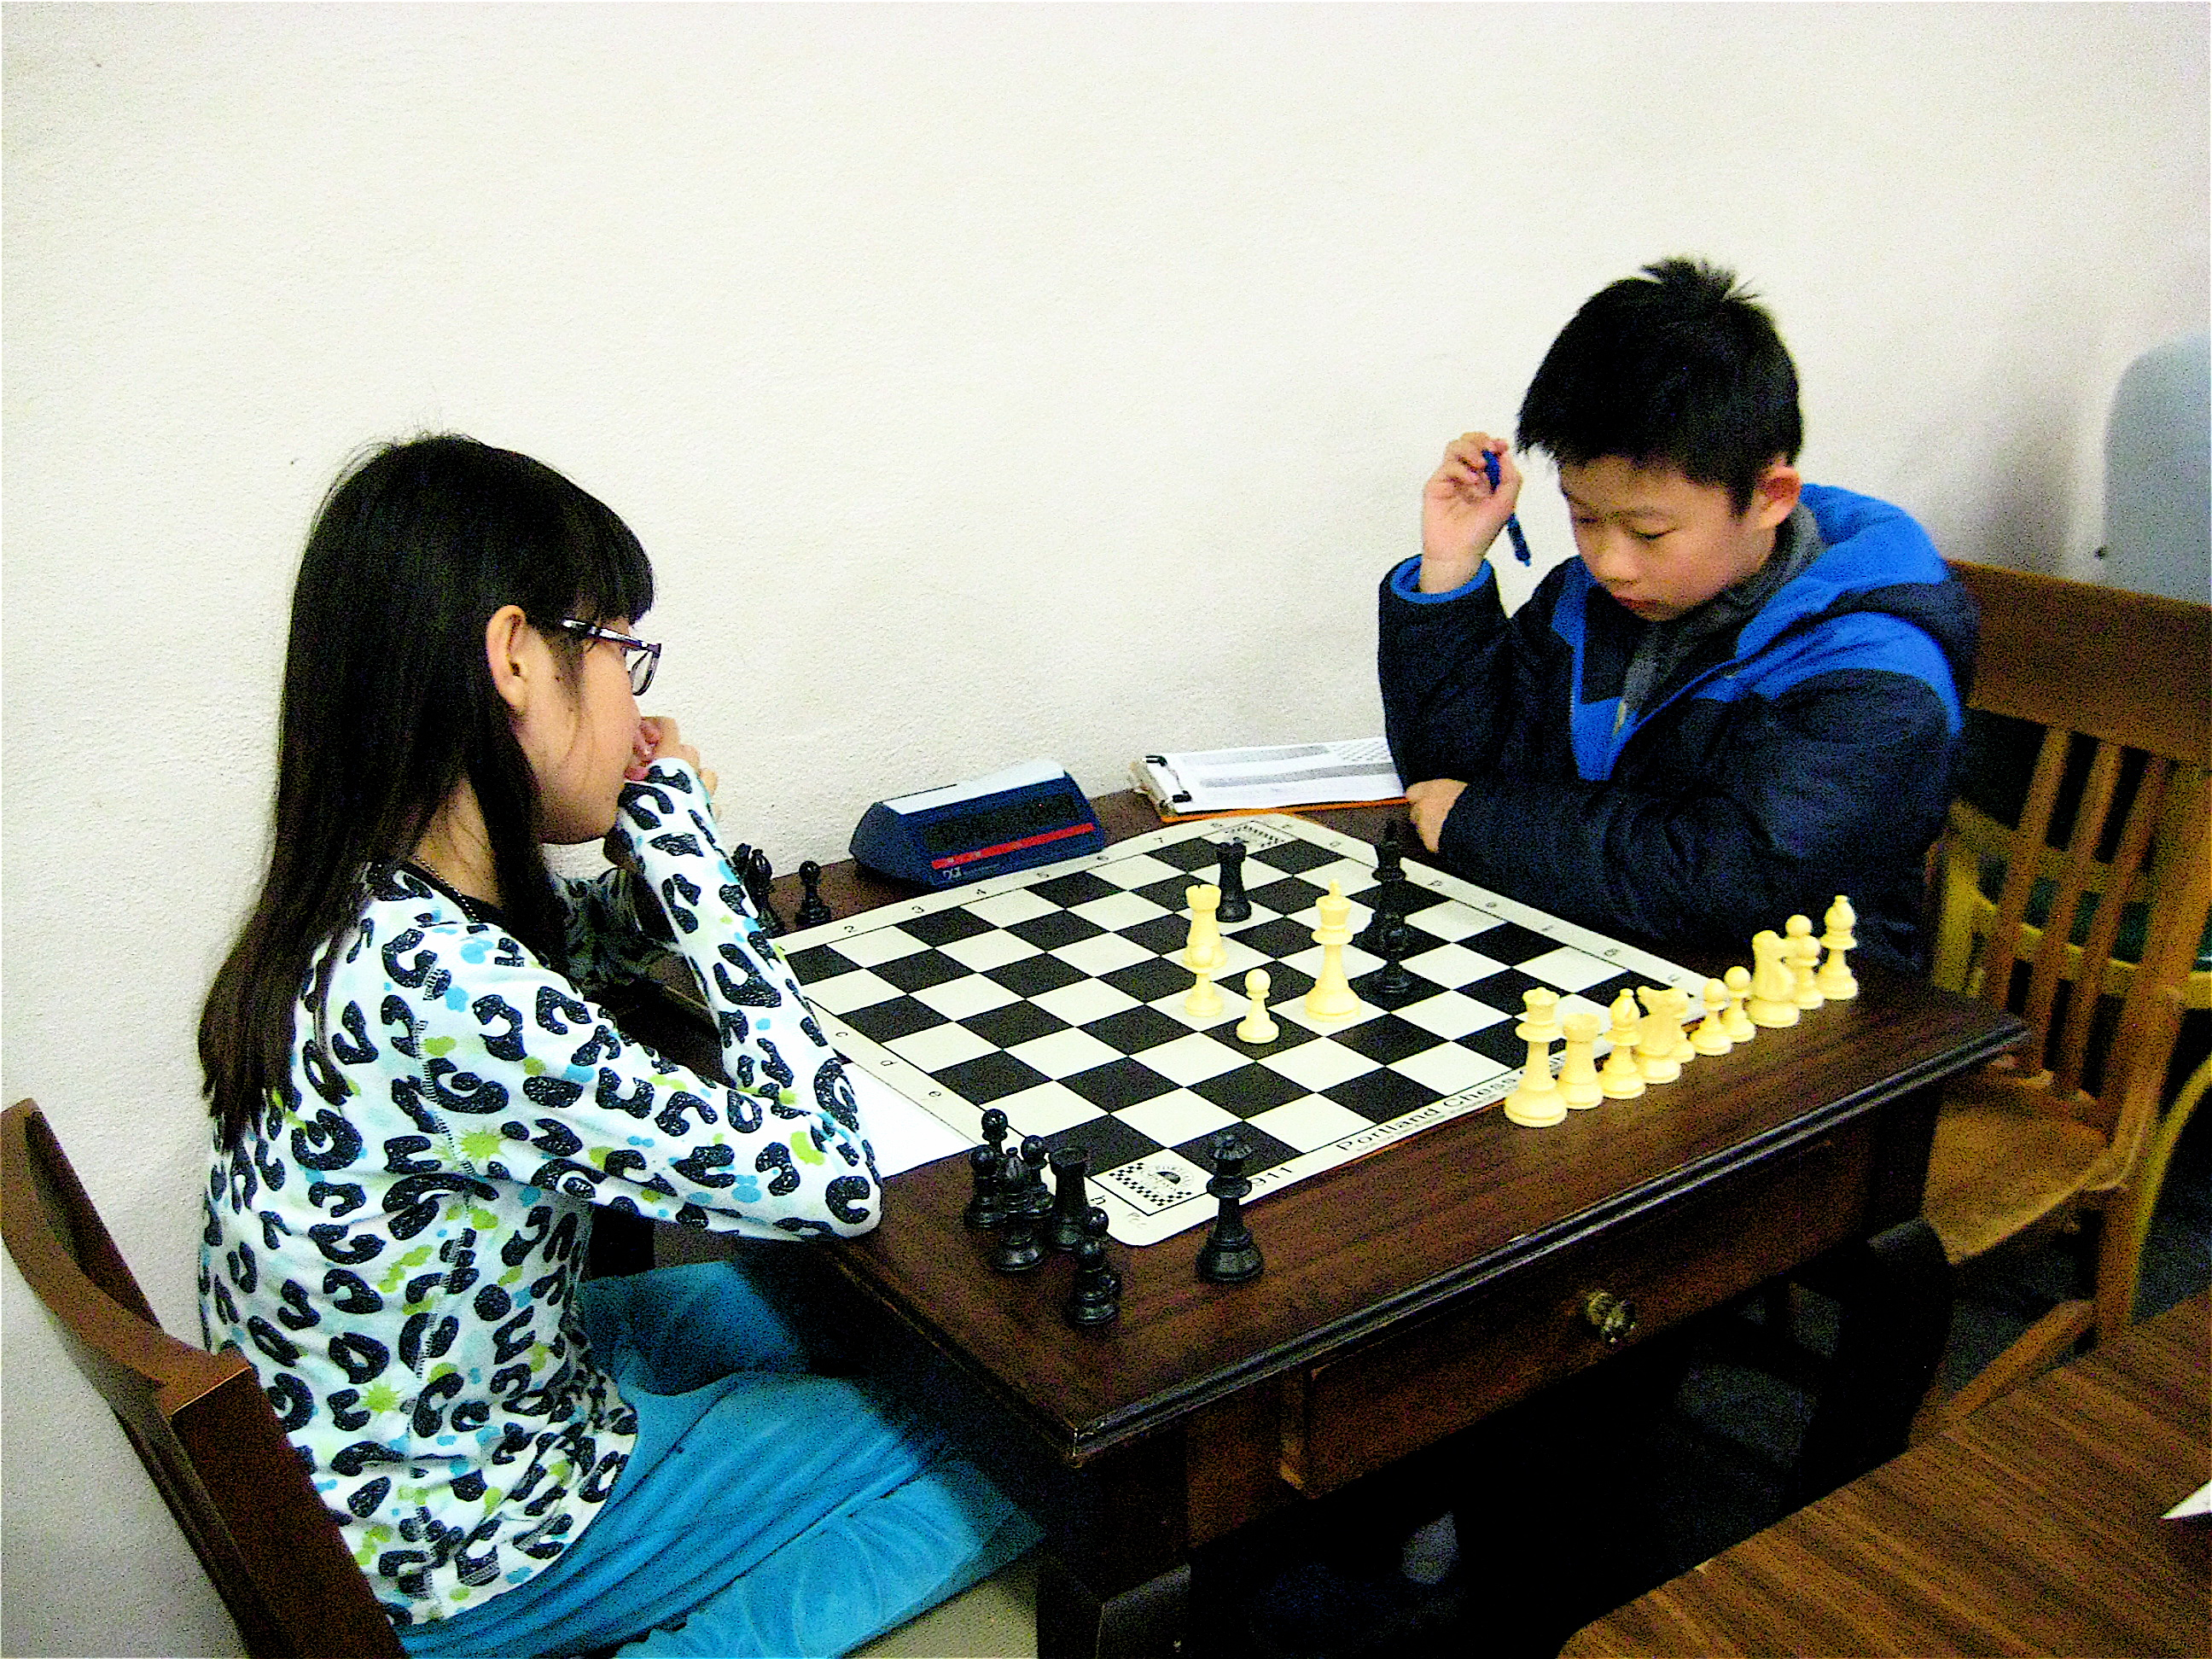 Couple of young players at the event. Megan Cheng and Marcus Chi-Kin Leung